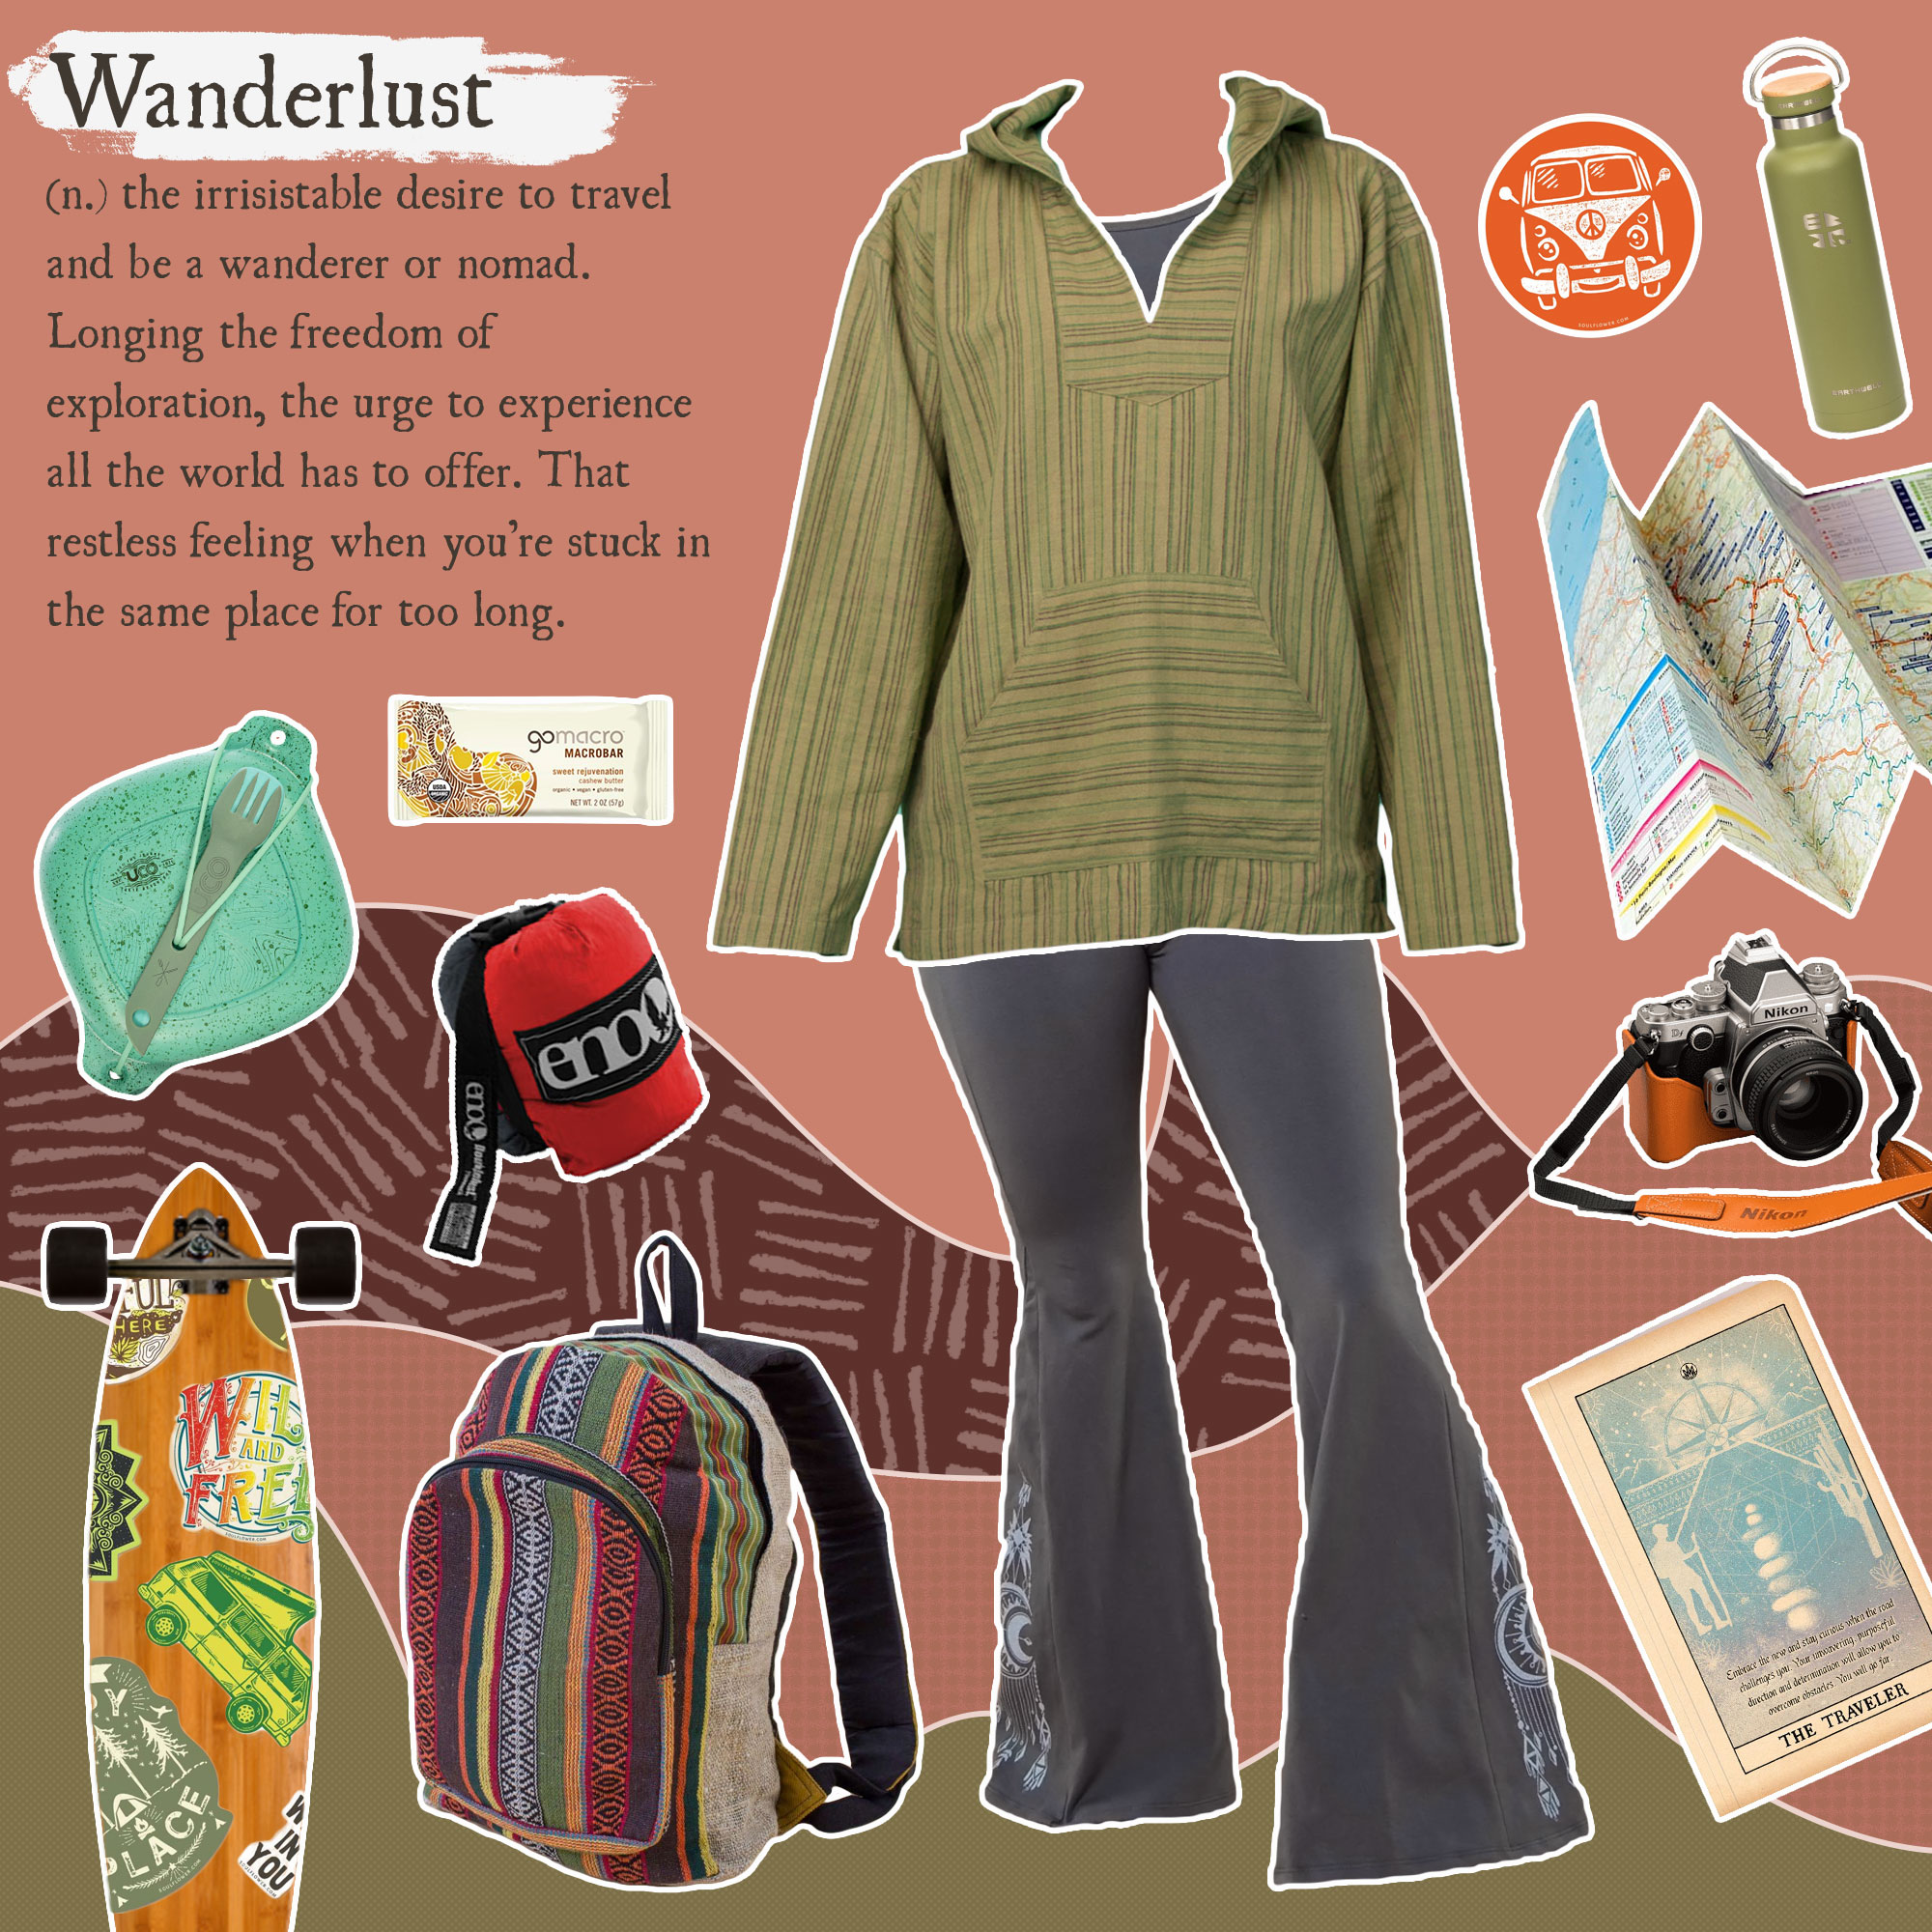 Wanderlust Blog - What's Your Style? Find Your Best Outfit!